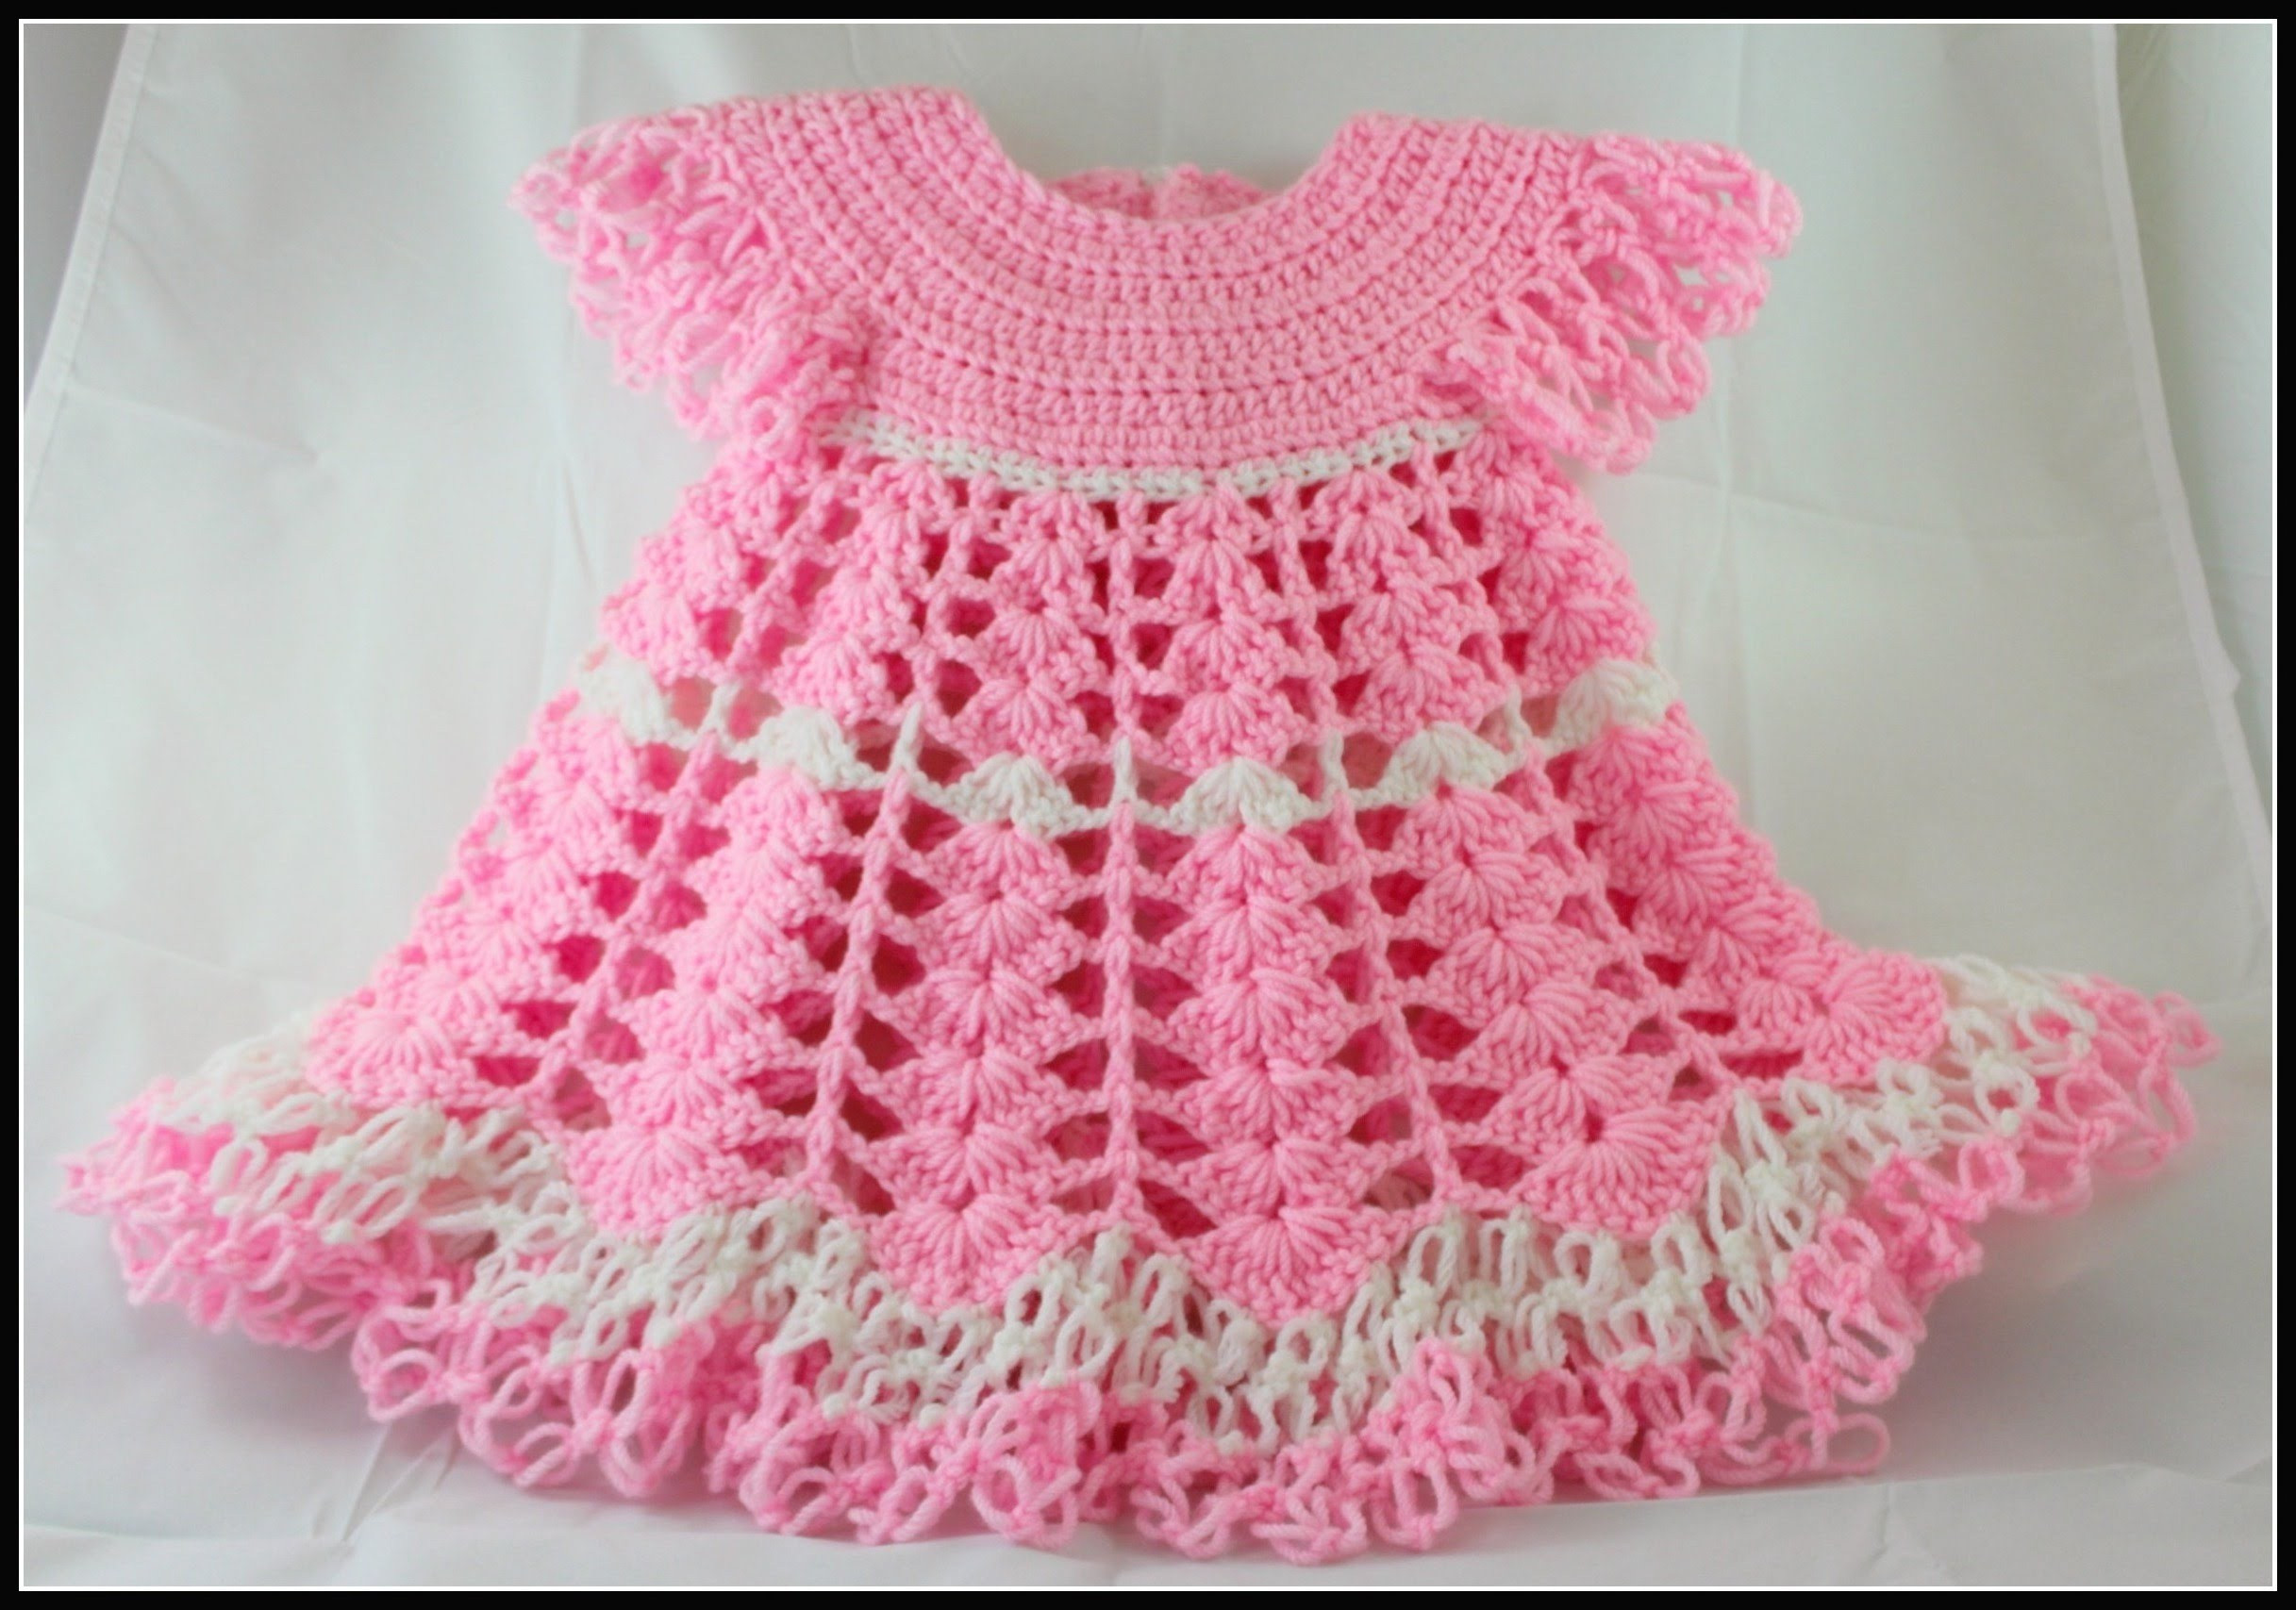 Free Crochet Patterns Baby Clothes Fresh Handmade Crochet Baby Clothes for Sale Of Awesome 40 Images Free Crochet Patterns Baby Clothes